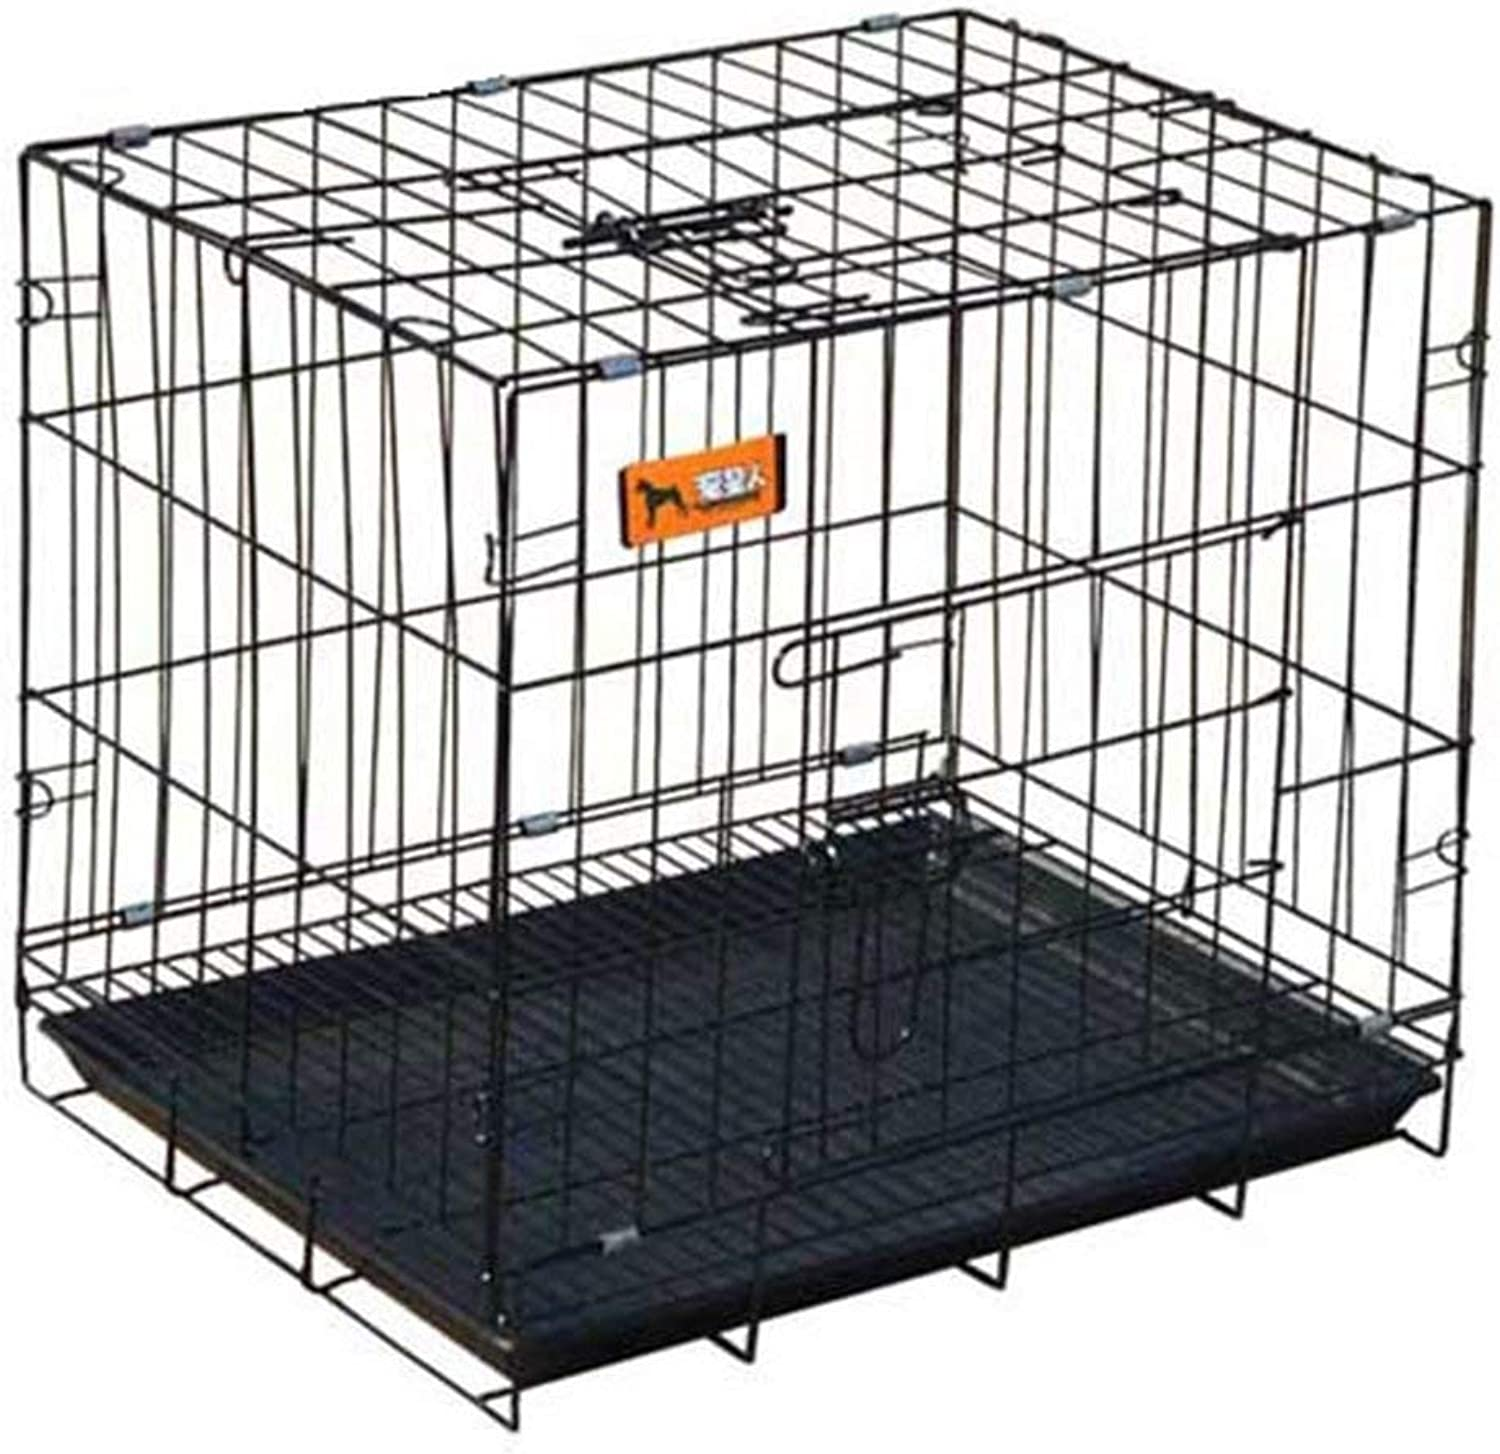 GBY Puppy heavy puppy play pen Dog cage simple indoor fence inssizetion wire cage multifunctional pet cage bold dog cage wire mesh cat cage Puppy fence (Size   130  60  70CM)